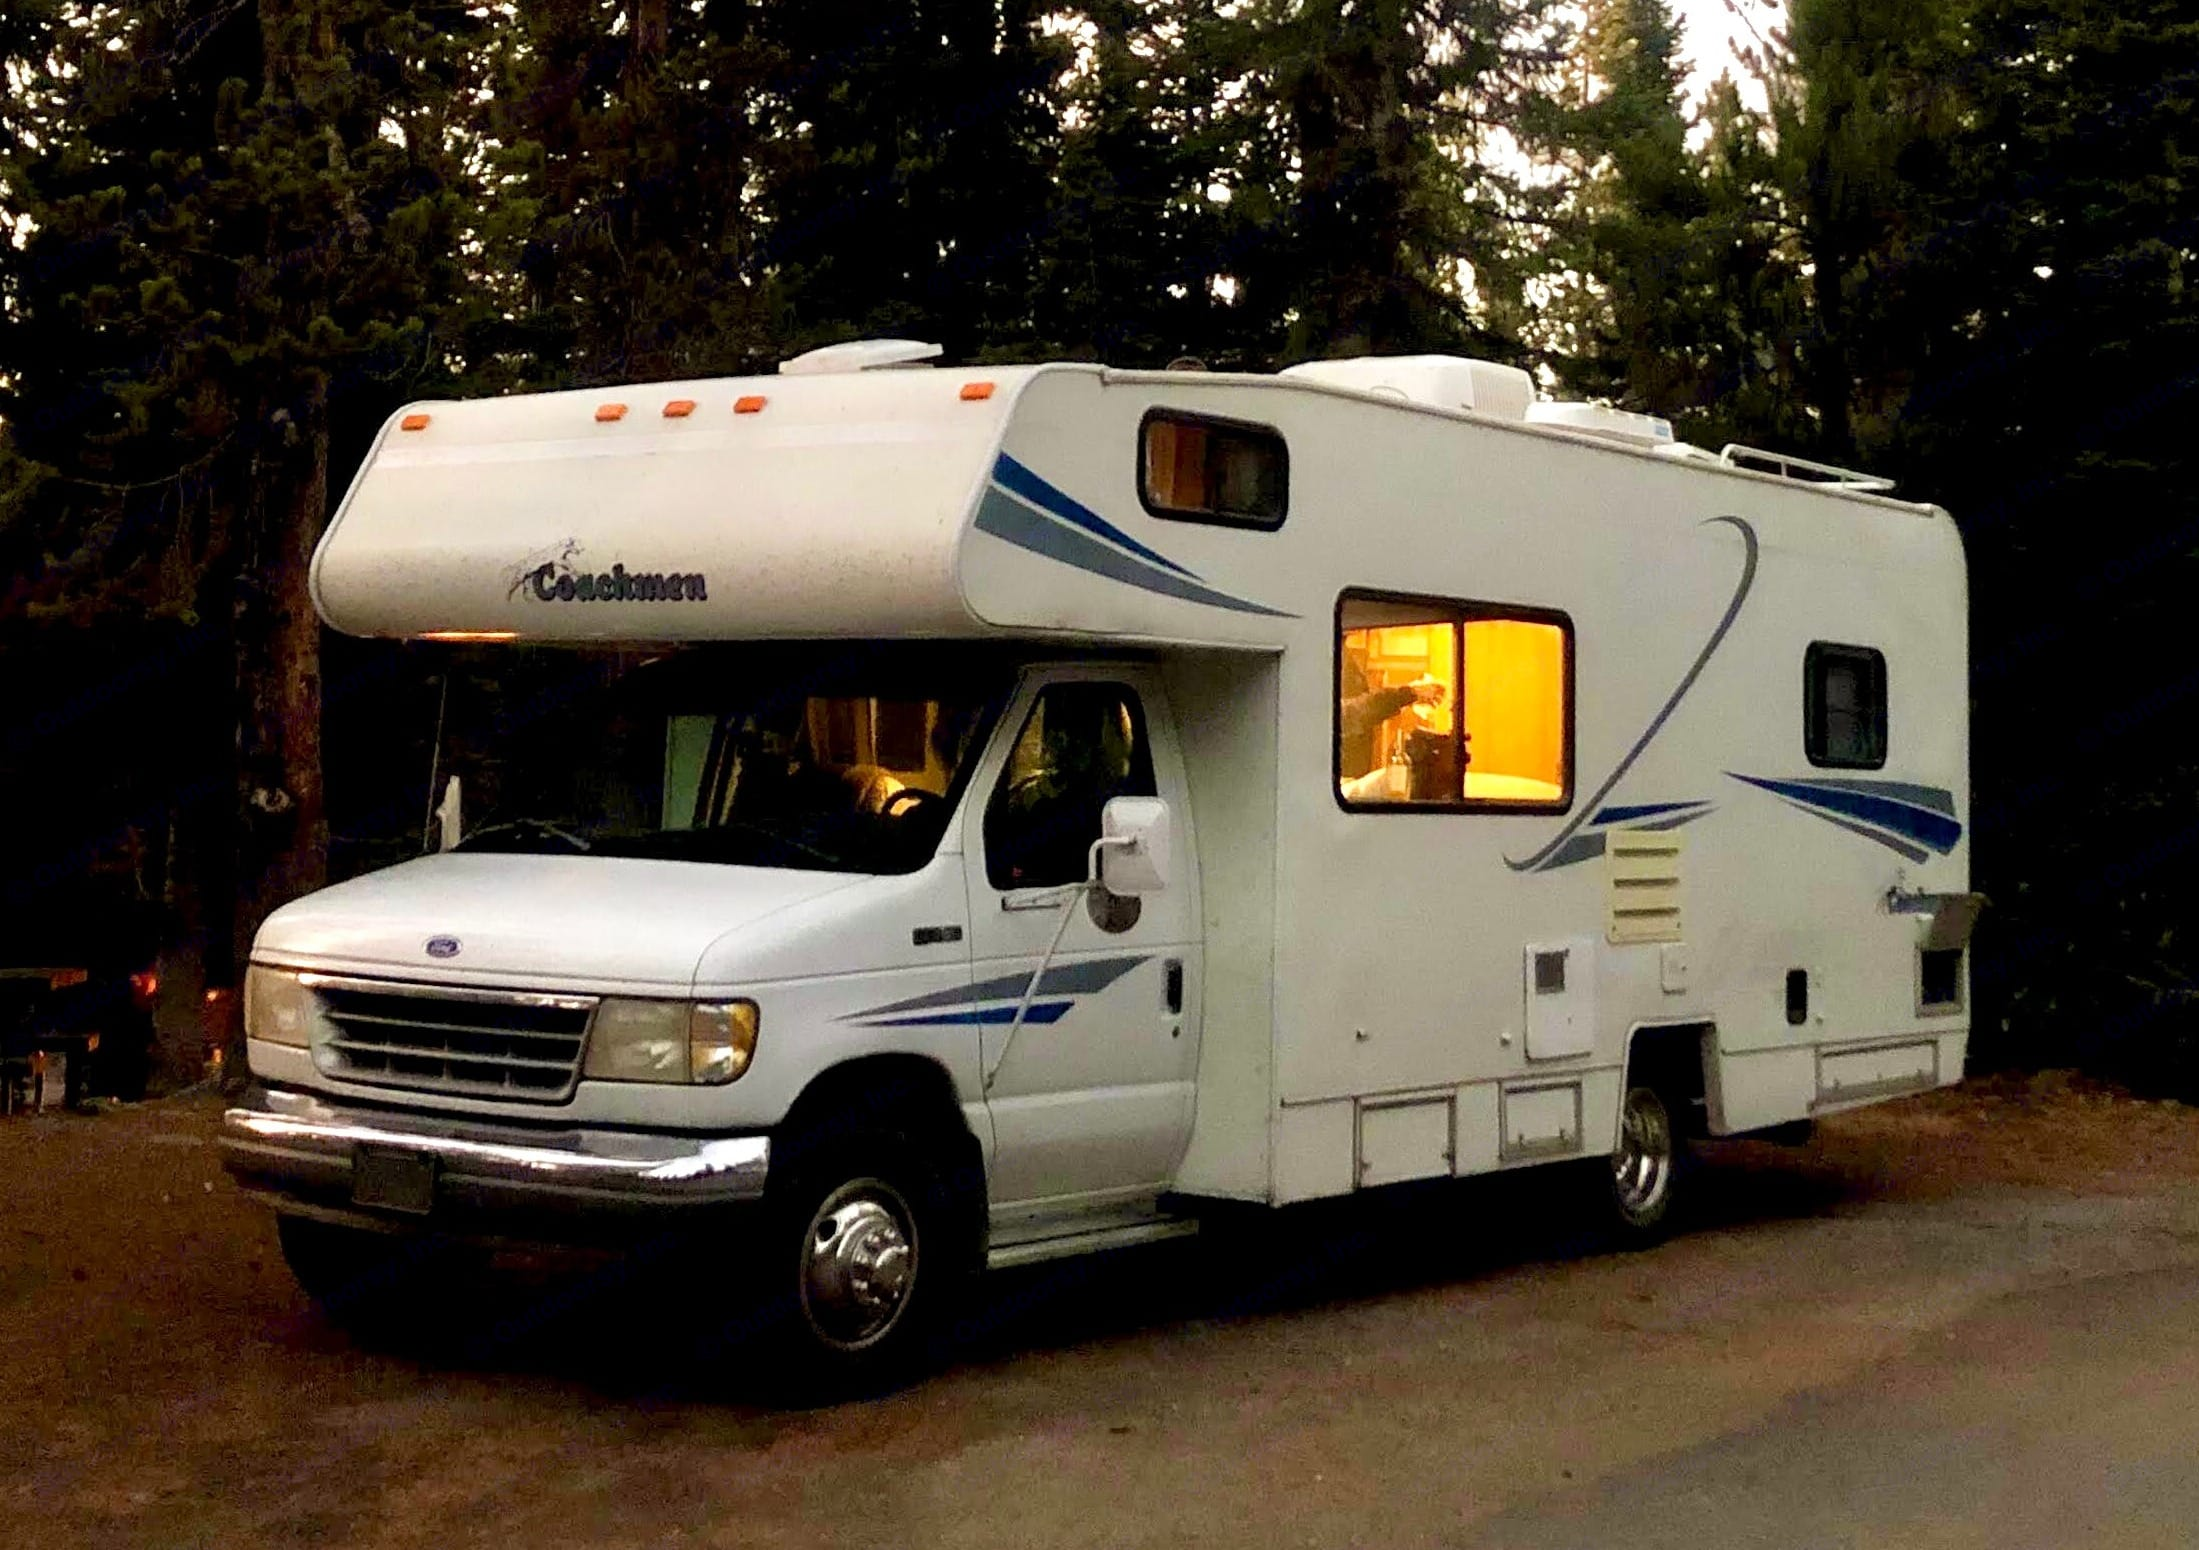 Parked up for the night in Yellowstone . Coachmen Catalina 1996